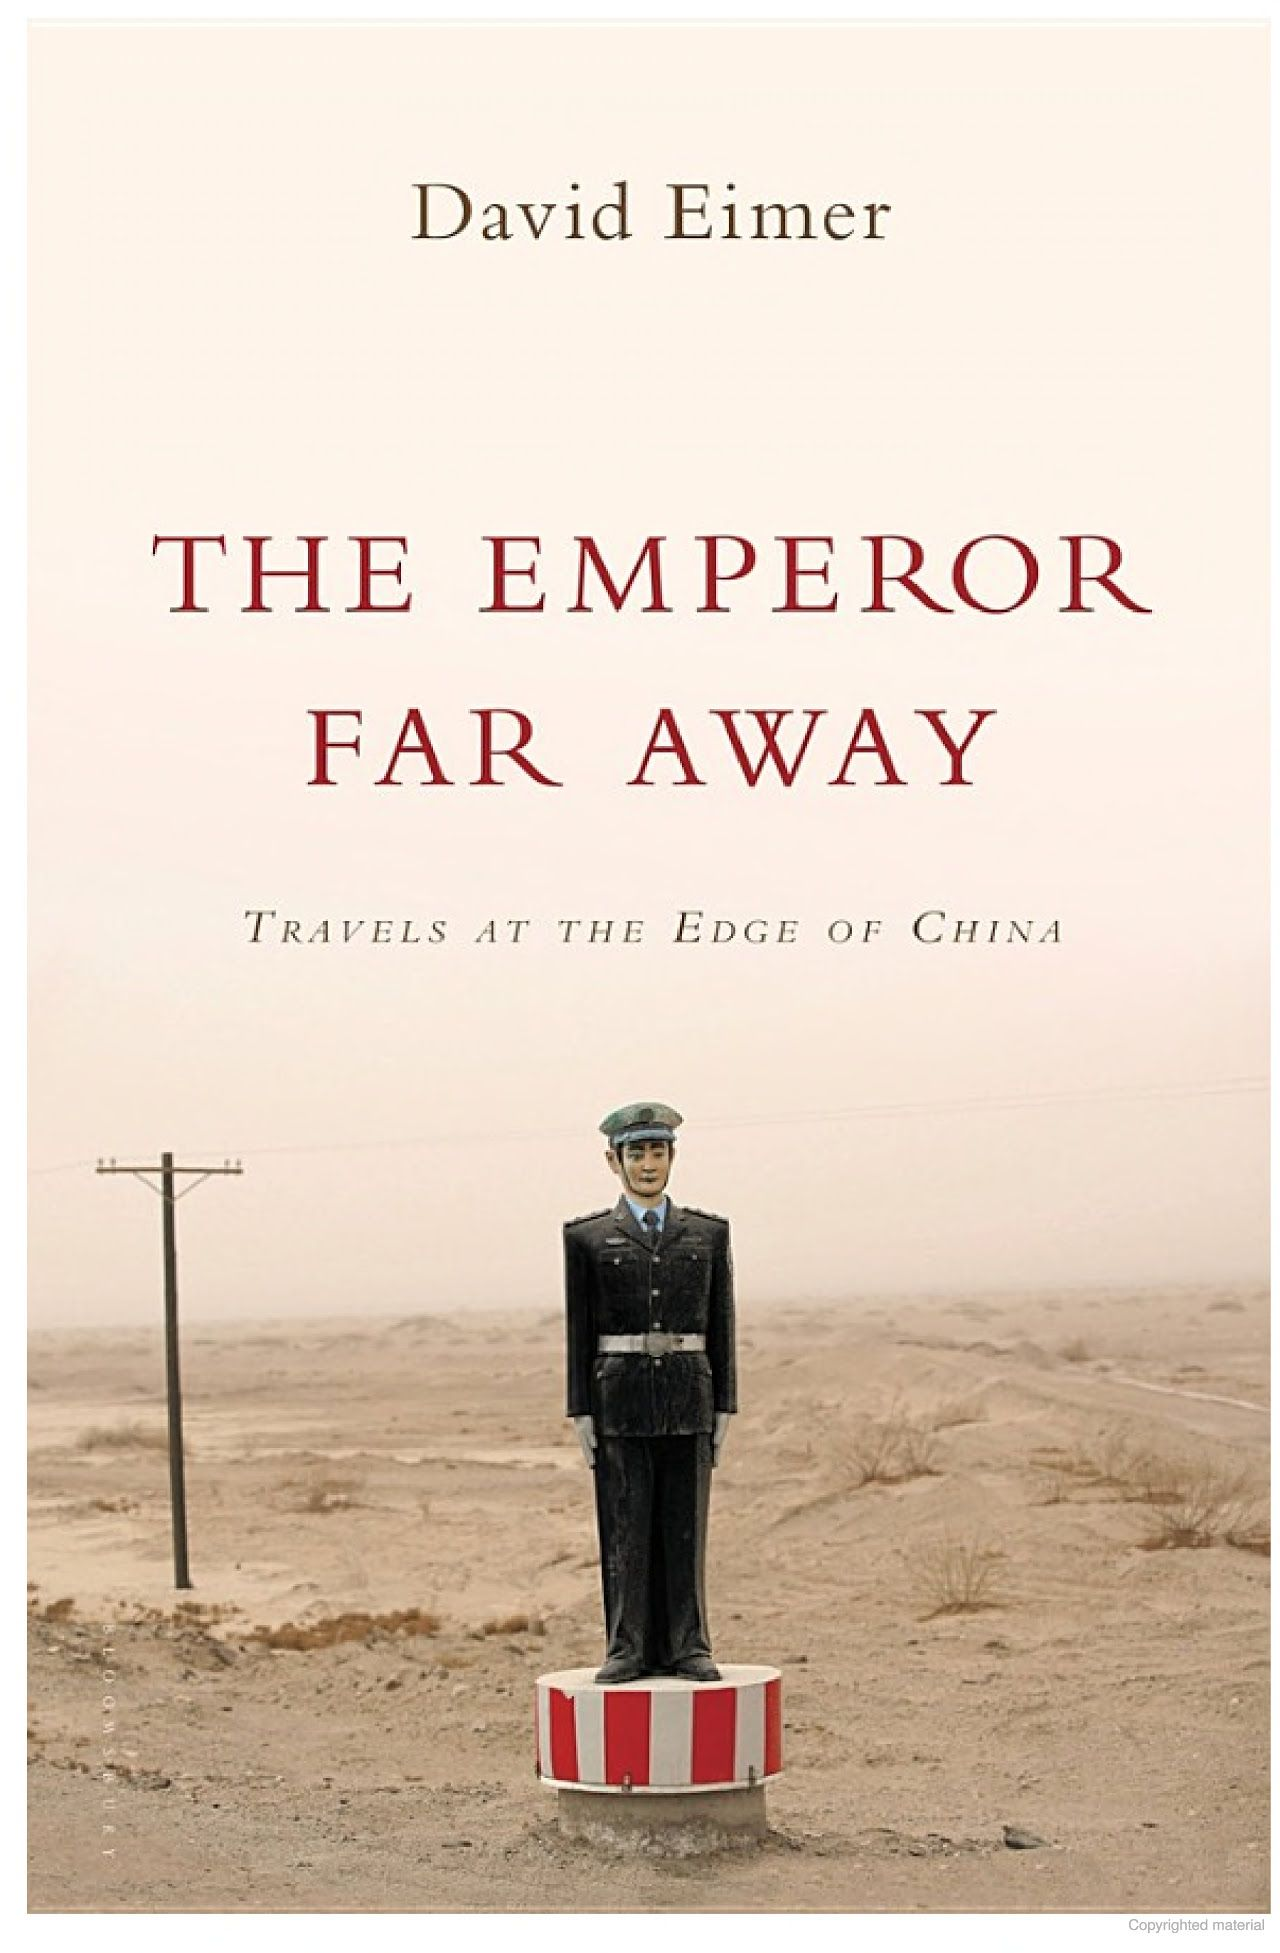 The Emperor Far Away: Travels at the Edge of China - David Eimer - Google